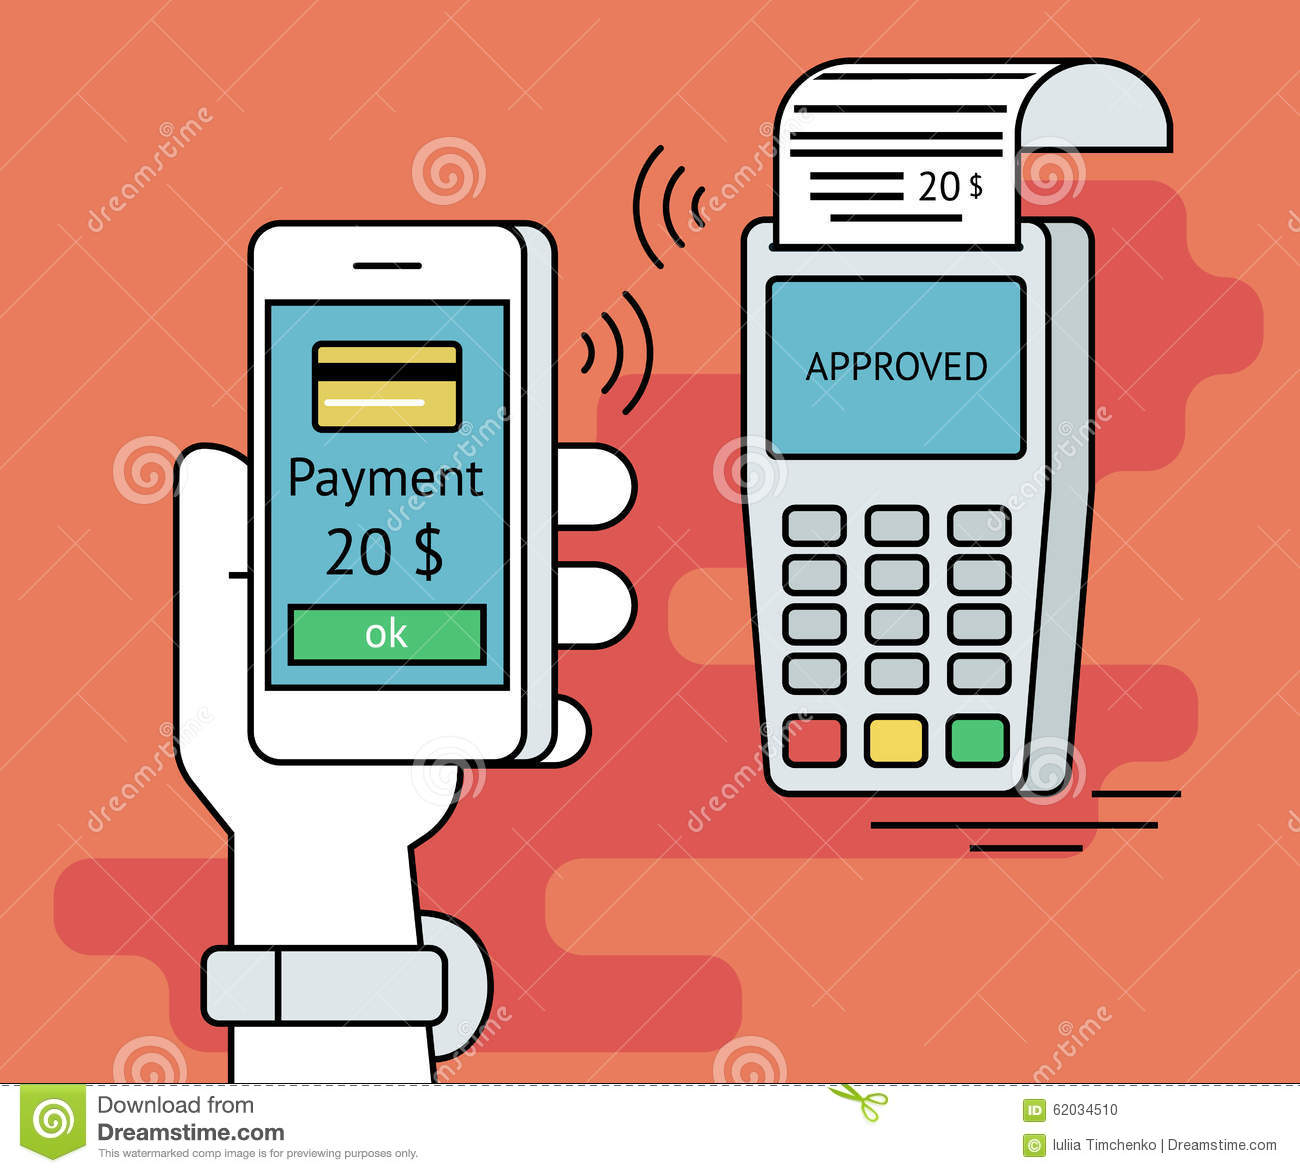 Image Result For Smartphone Line Access Fee Device Payment